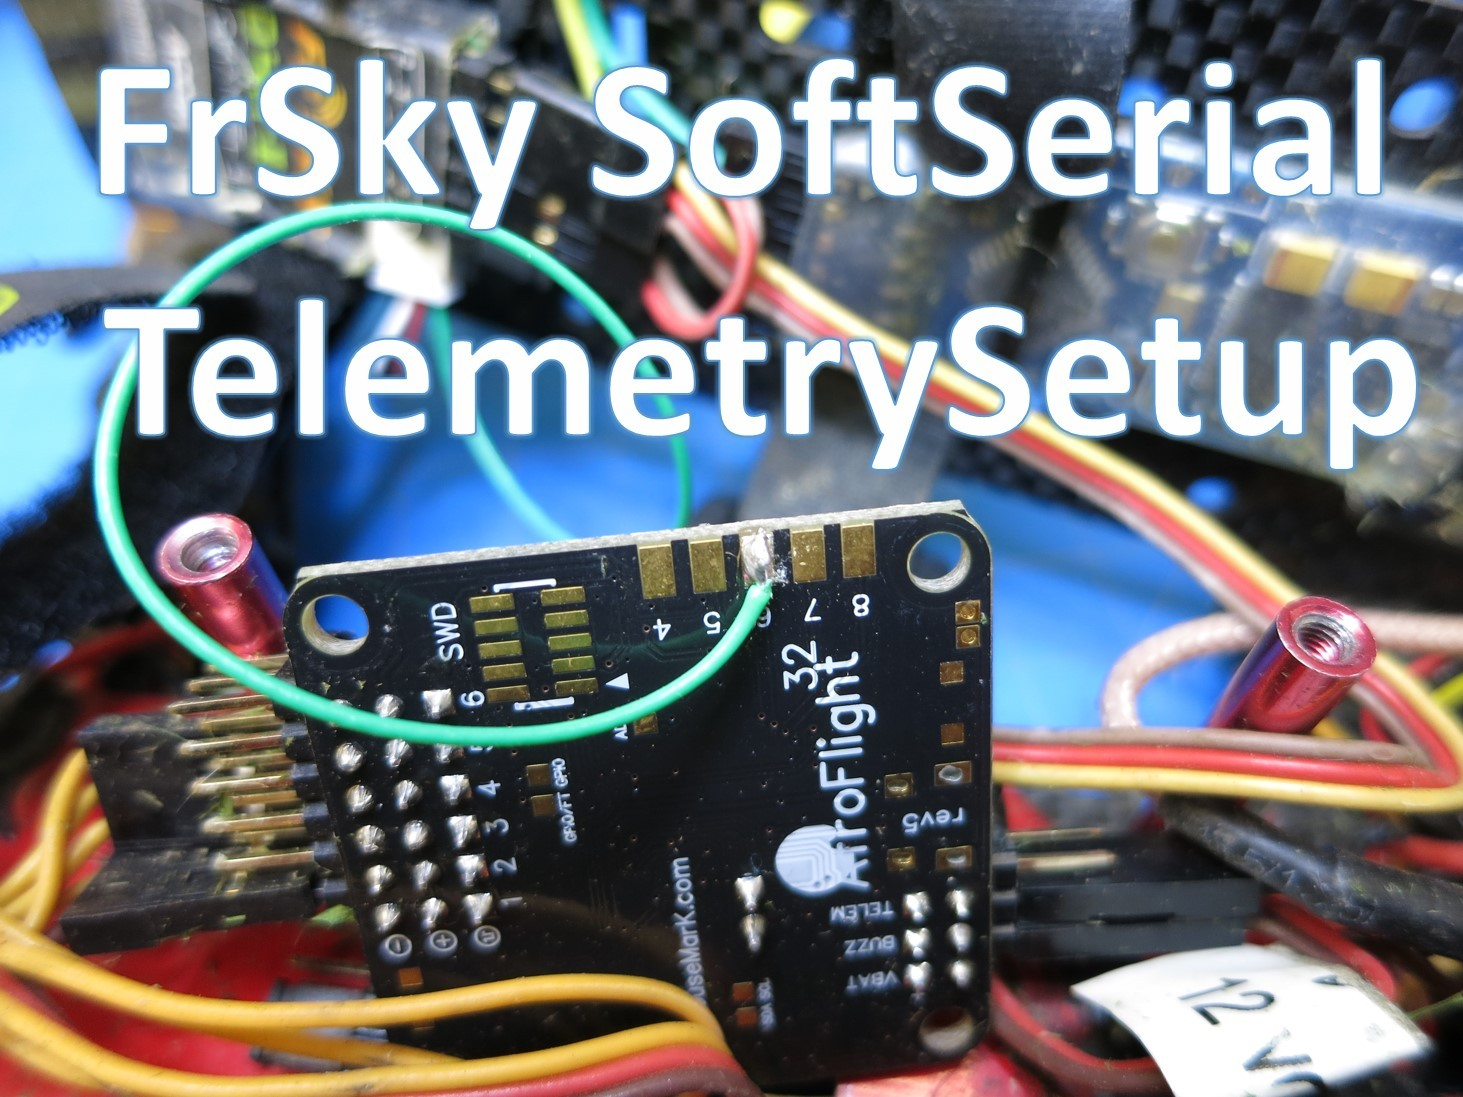 How to use FrSky Telemetry on your miniquad with cleanflight